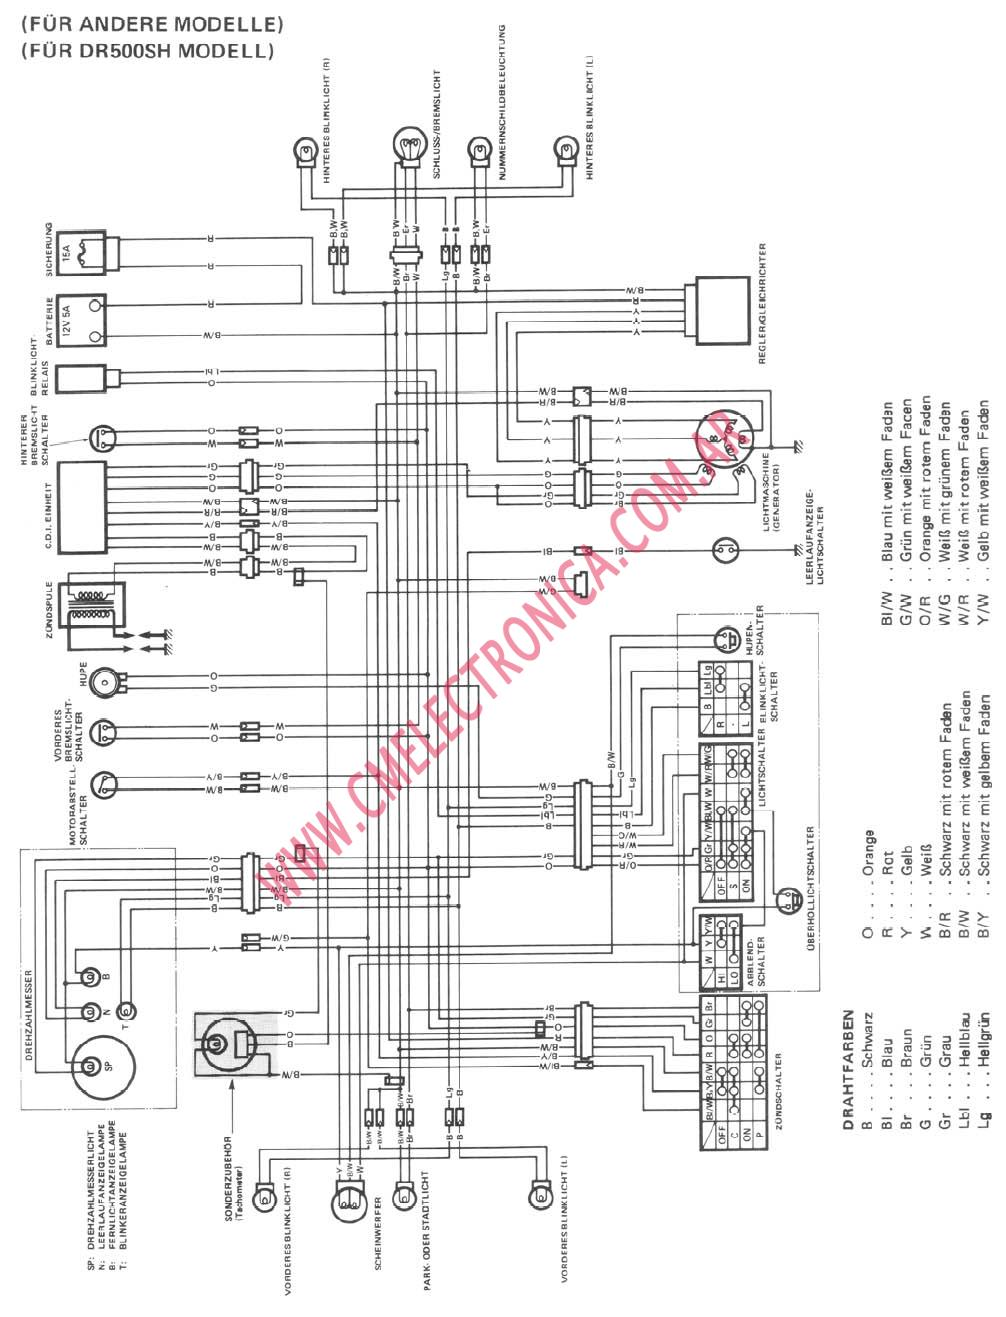 suzuki dr 750 wiring diagram with 2007 Hayabusa Wiring Diagram on 1974 Suzuki Wiring Diagrams furthermore Suzuki Dr 250 Wiring Diagram Wiring Diagrams in addition 7623 Truck Wont Run besides 2001 Gsxr 600 Wiring Diagram additionally 2013 Ford F 650 Cars.